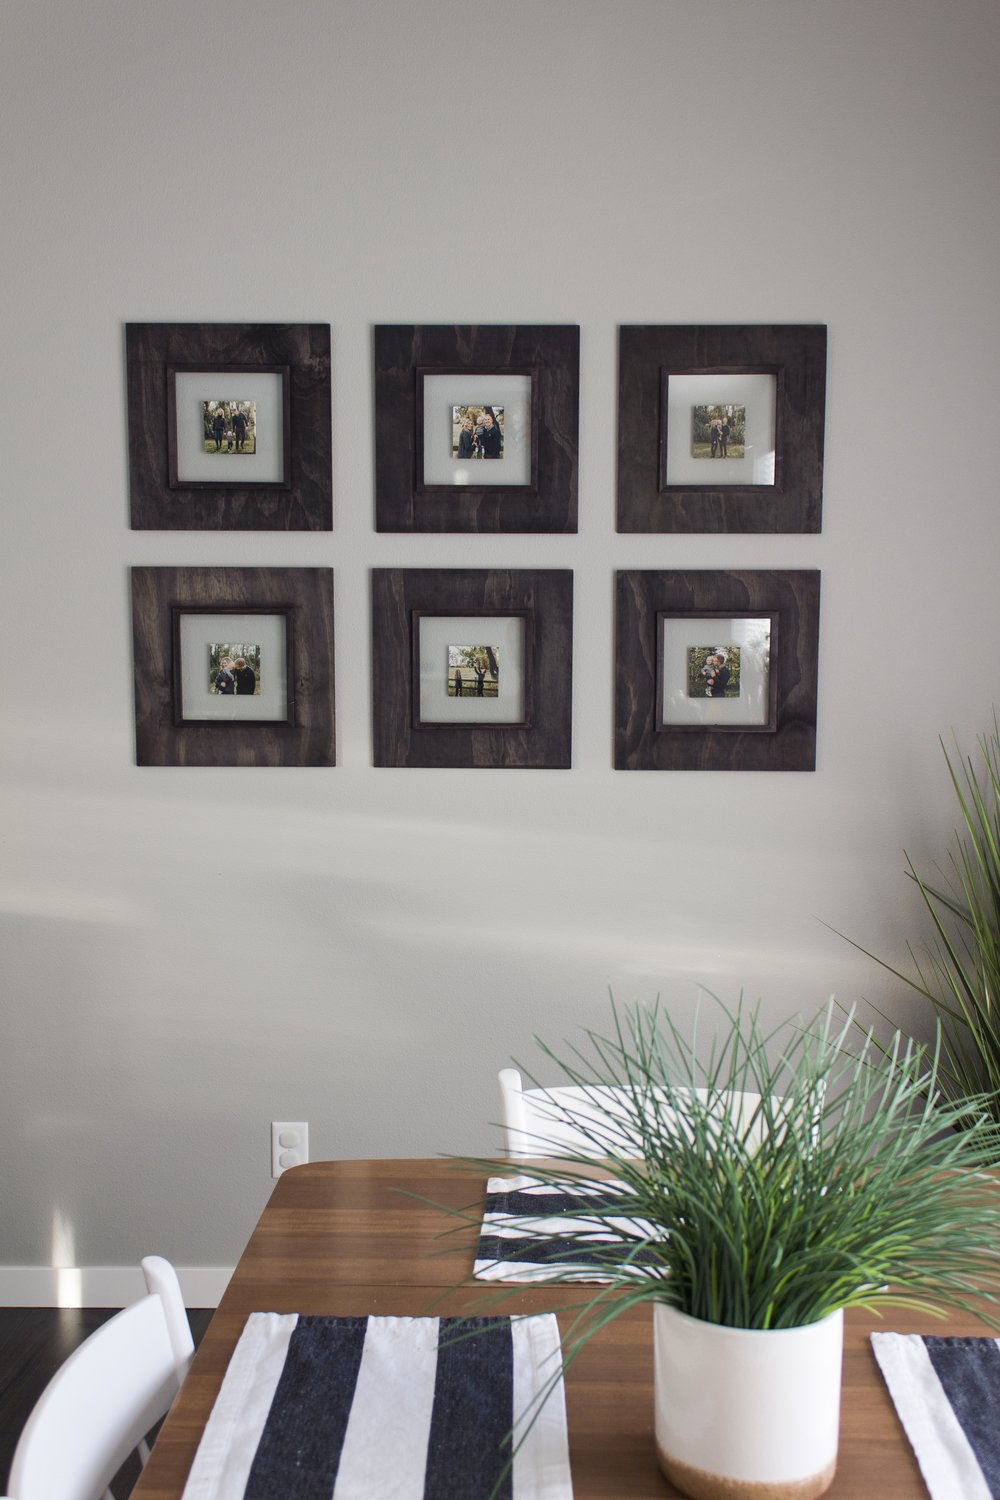 DIY-gallery-wall-on-a-budget-1.jpg